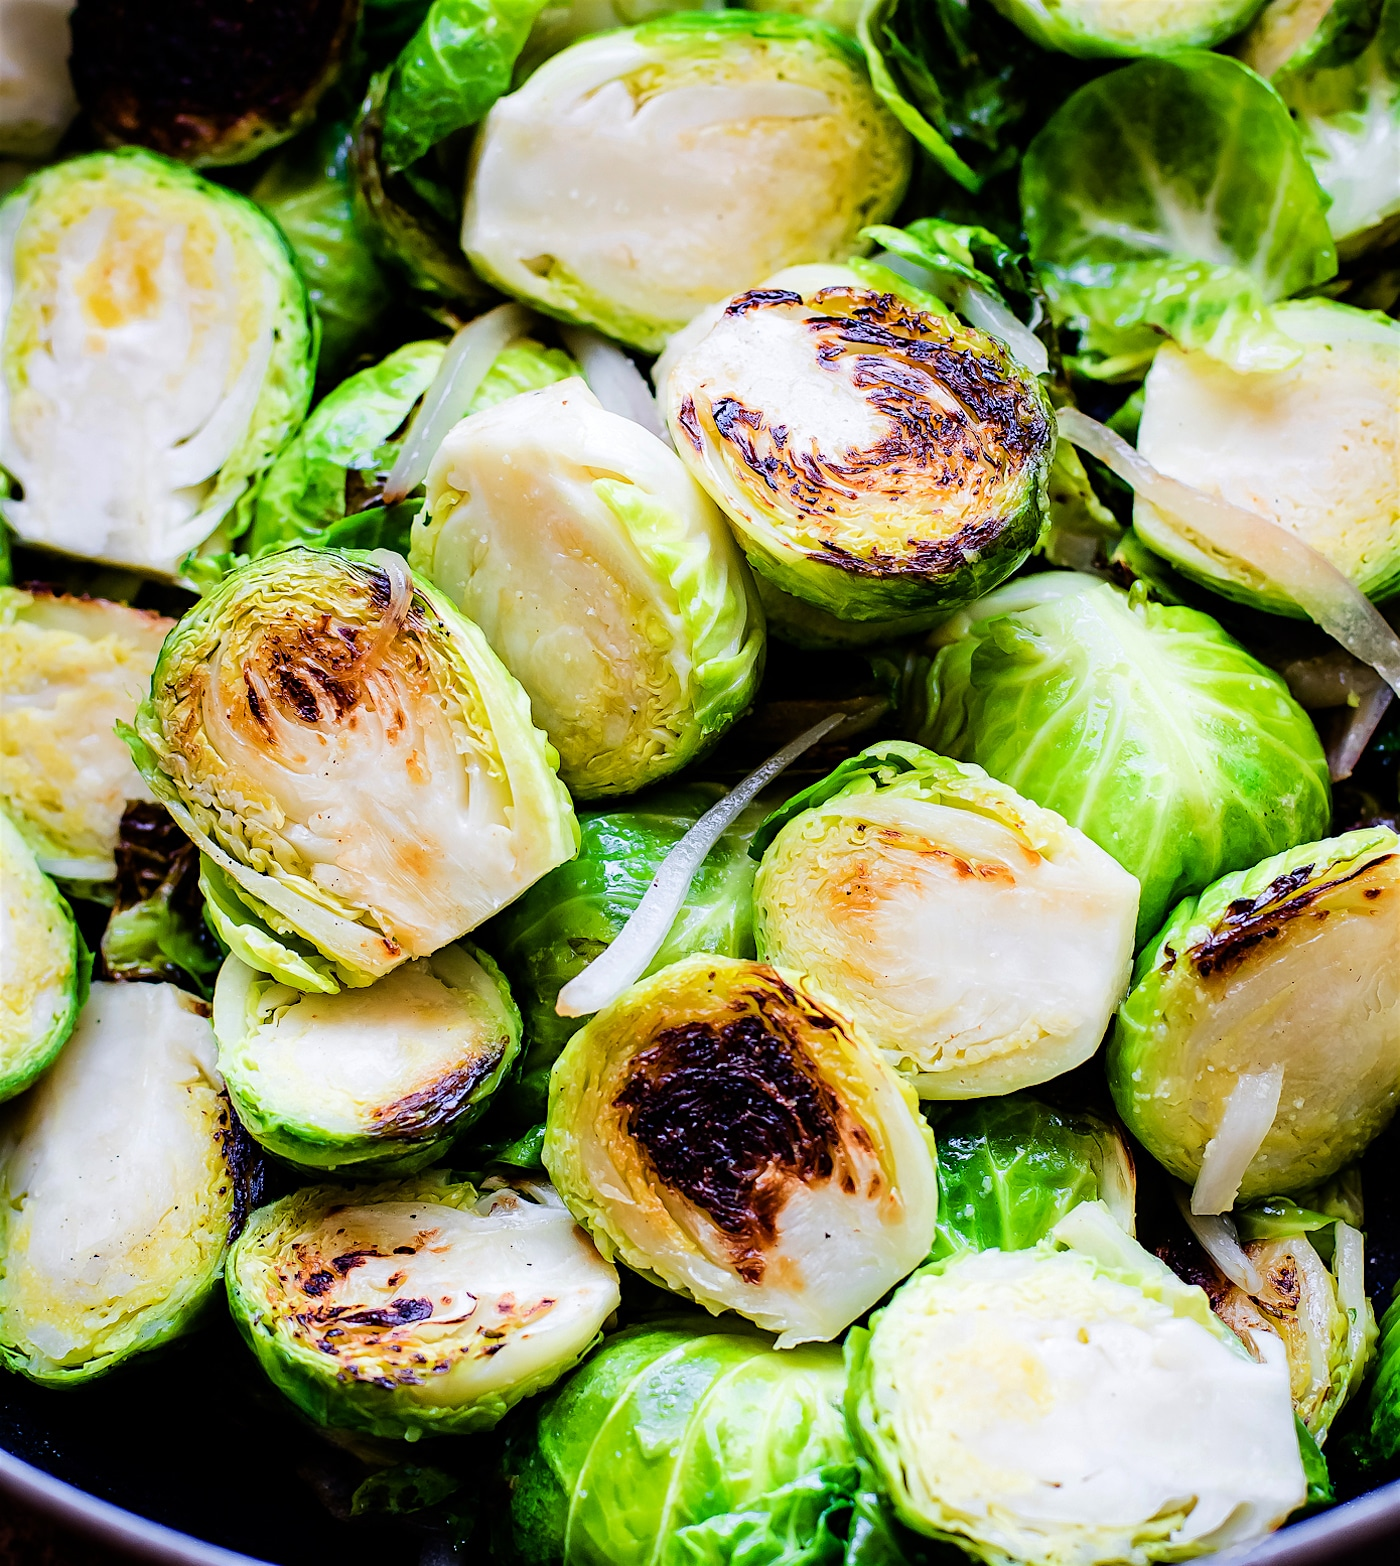 Pan Fried Creamy Mustard Brussels Sprouts Salad! A Brussel Sprouts superfood salad tossed in a vegan creamy mustard sauce. An easy to make paleo side dish!